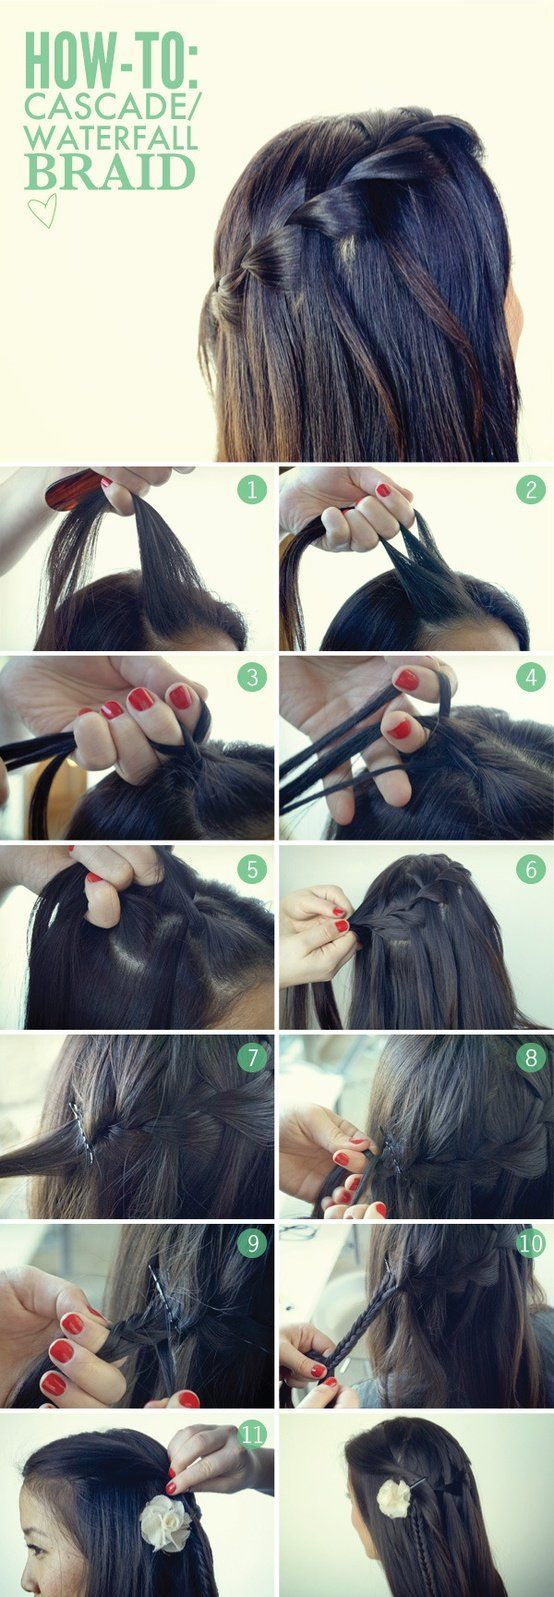 They make it look so easy i want to do this hair pinterest